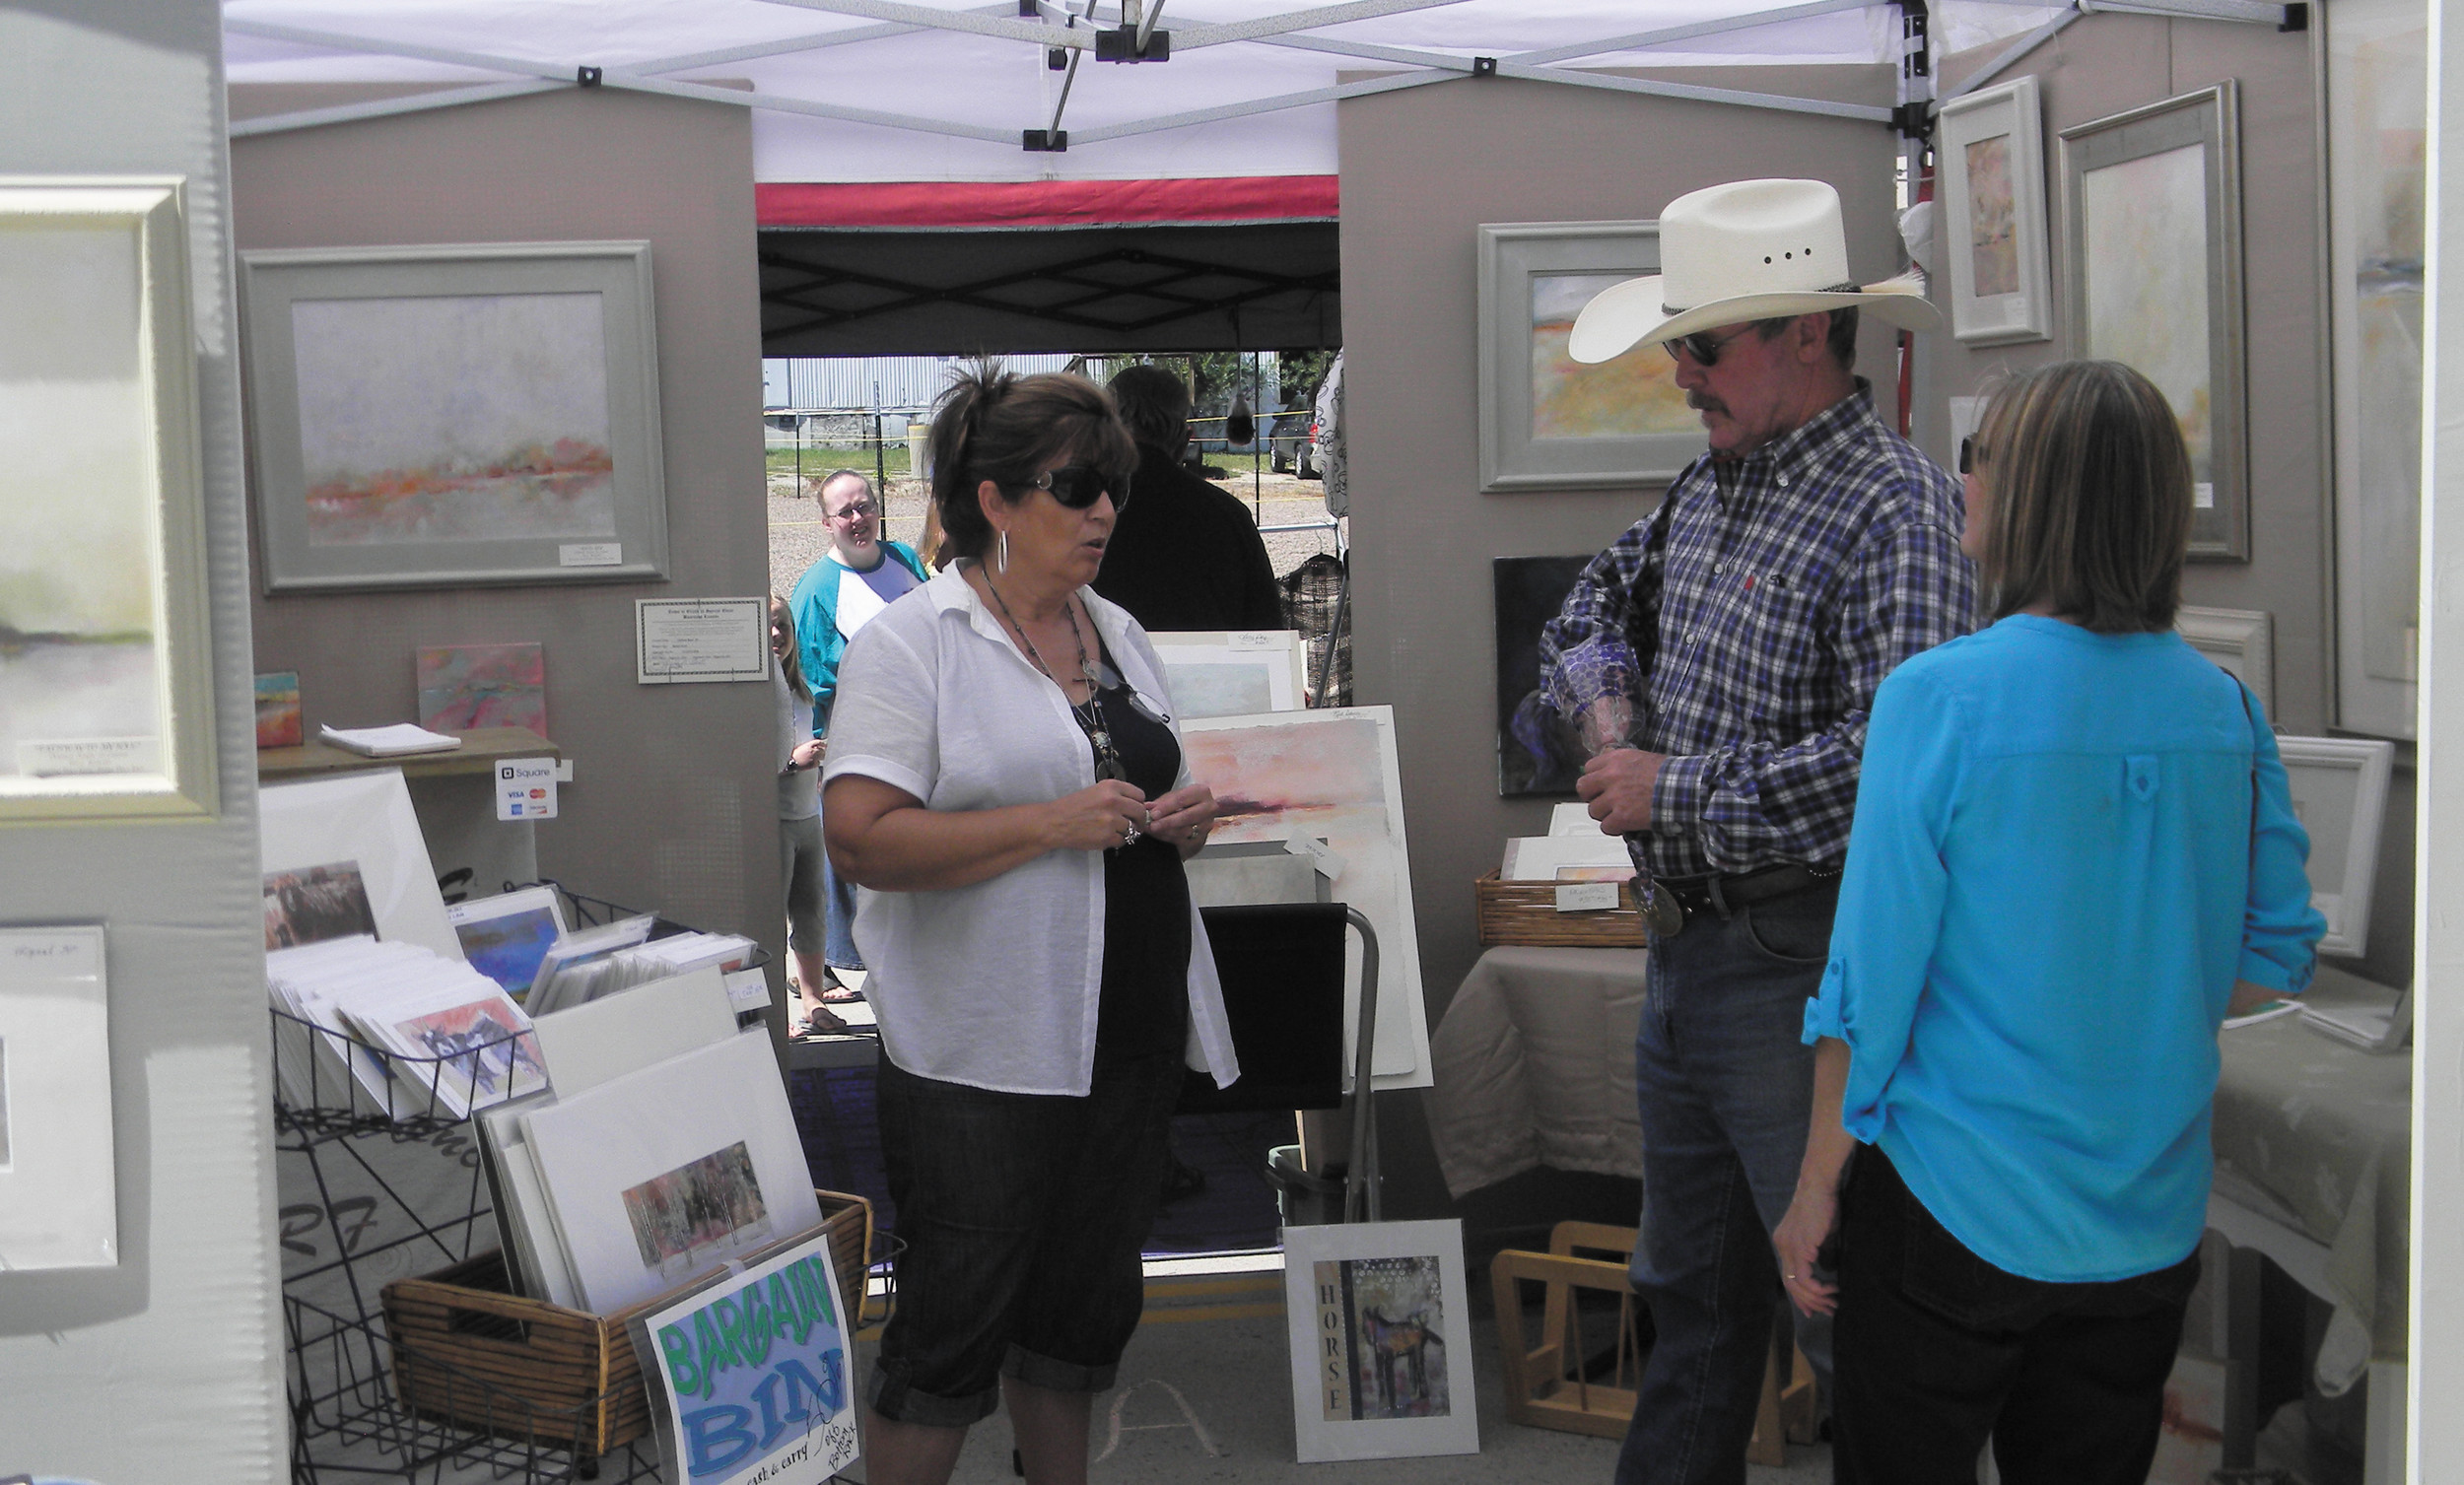 Charlotte Davis, of Charlotte Renee Art, talks to patrons about her work during the Elizabeth Music and Arts Festival on Aug. 23. Courtesy photo